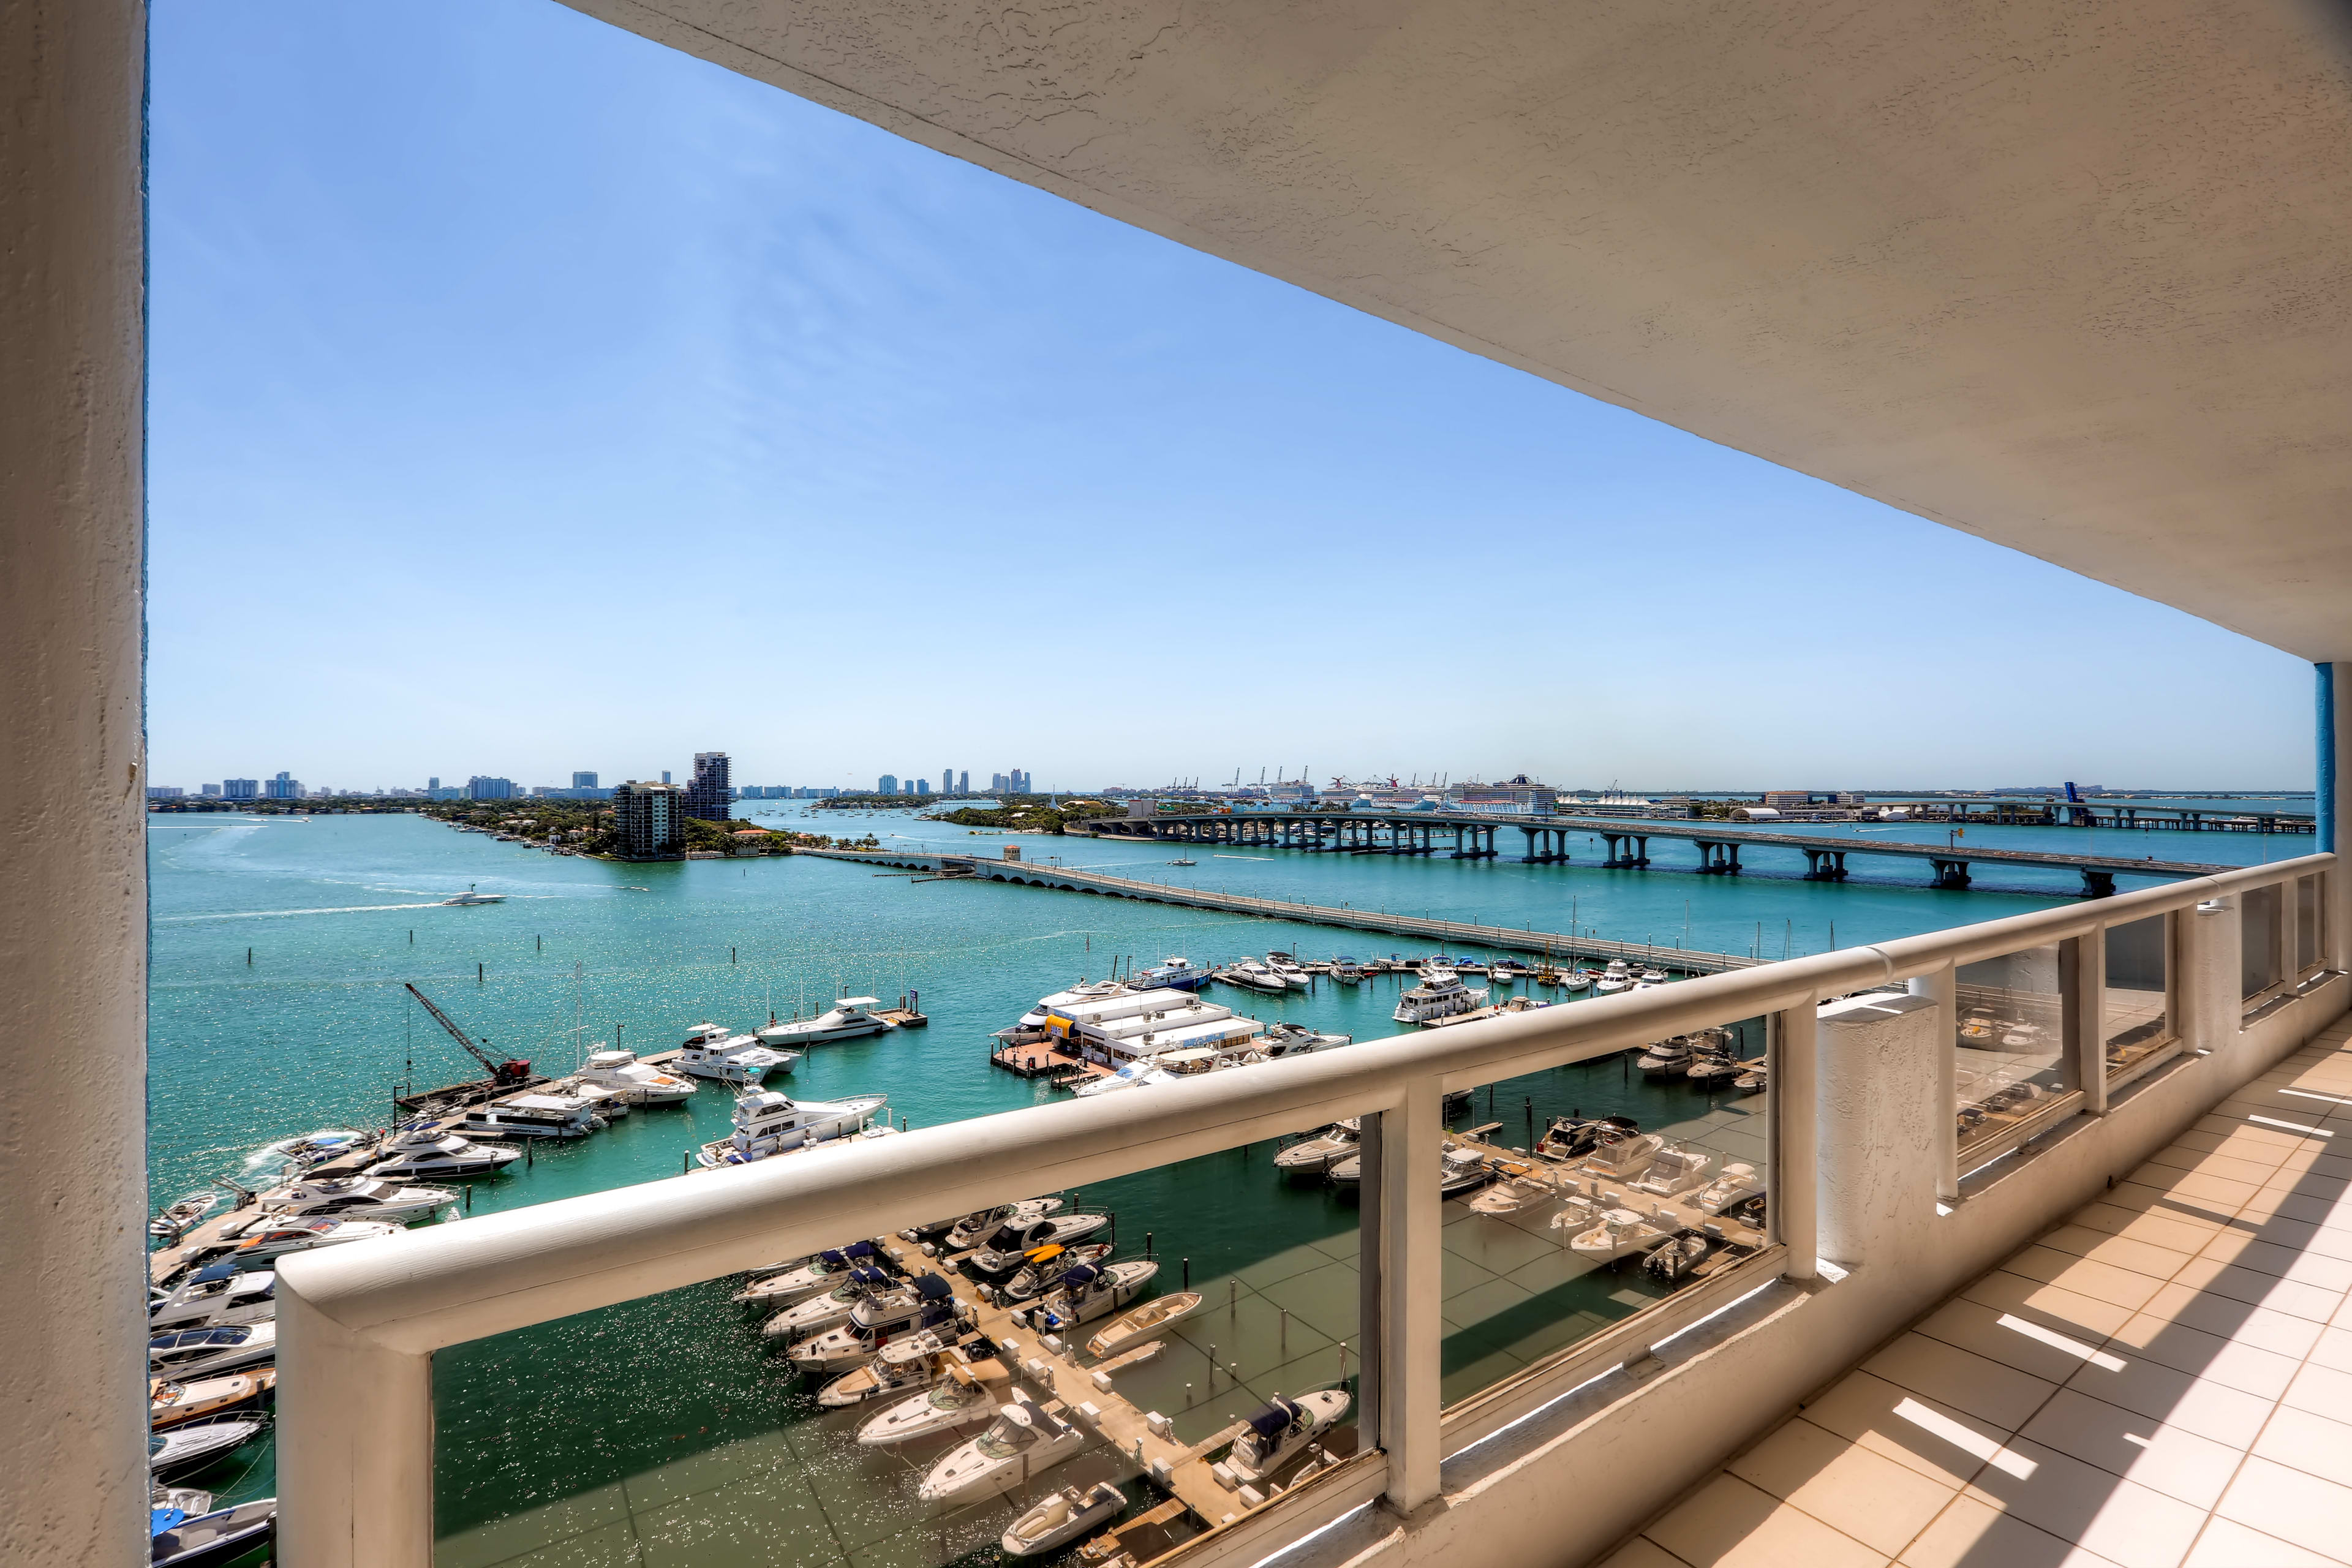 Take in waterfront views from your own private balcony!